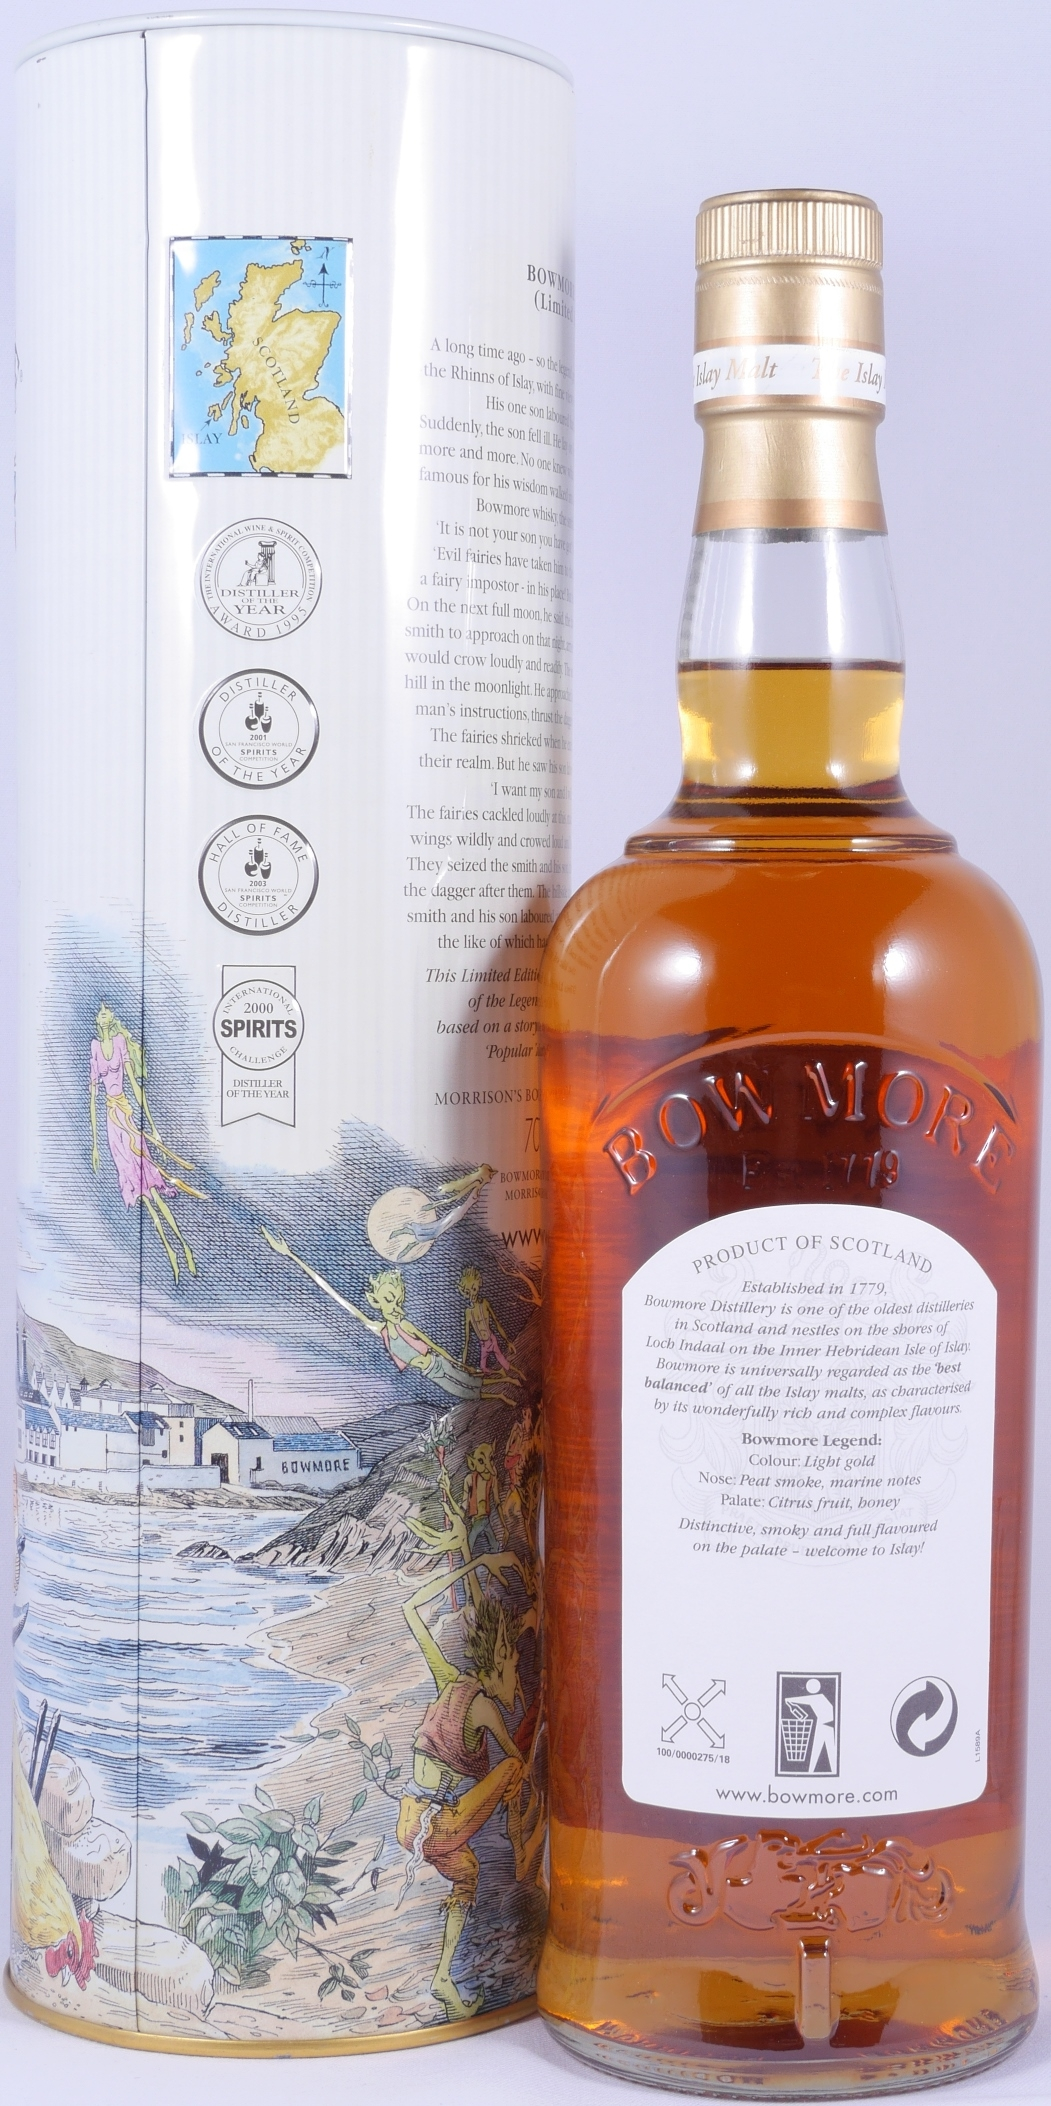 Buy Bowmore Legend the Blacksmith and the Fairies Limited